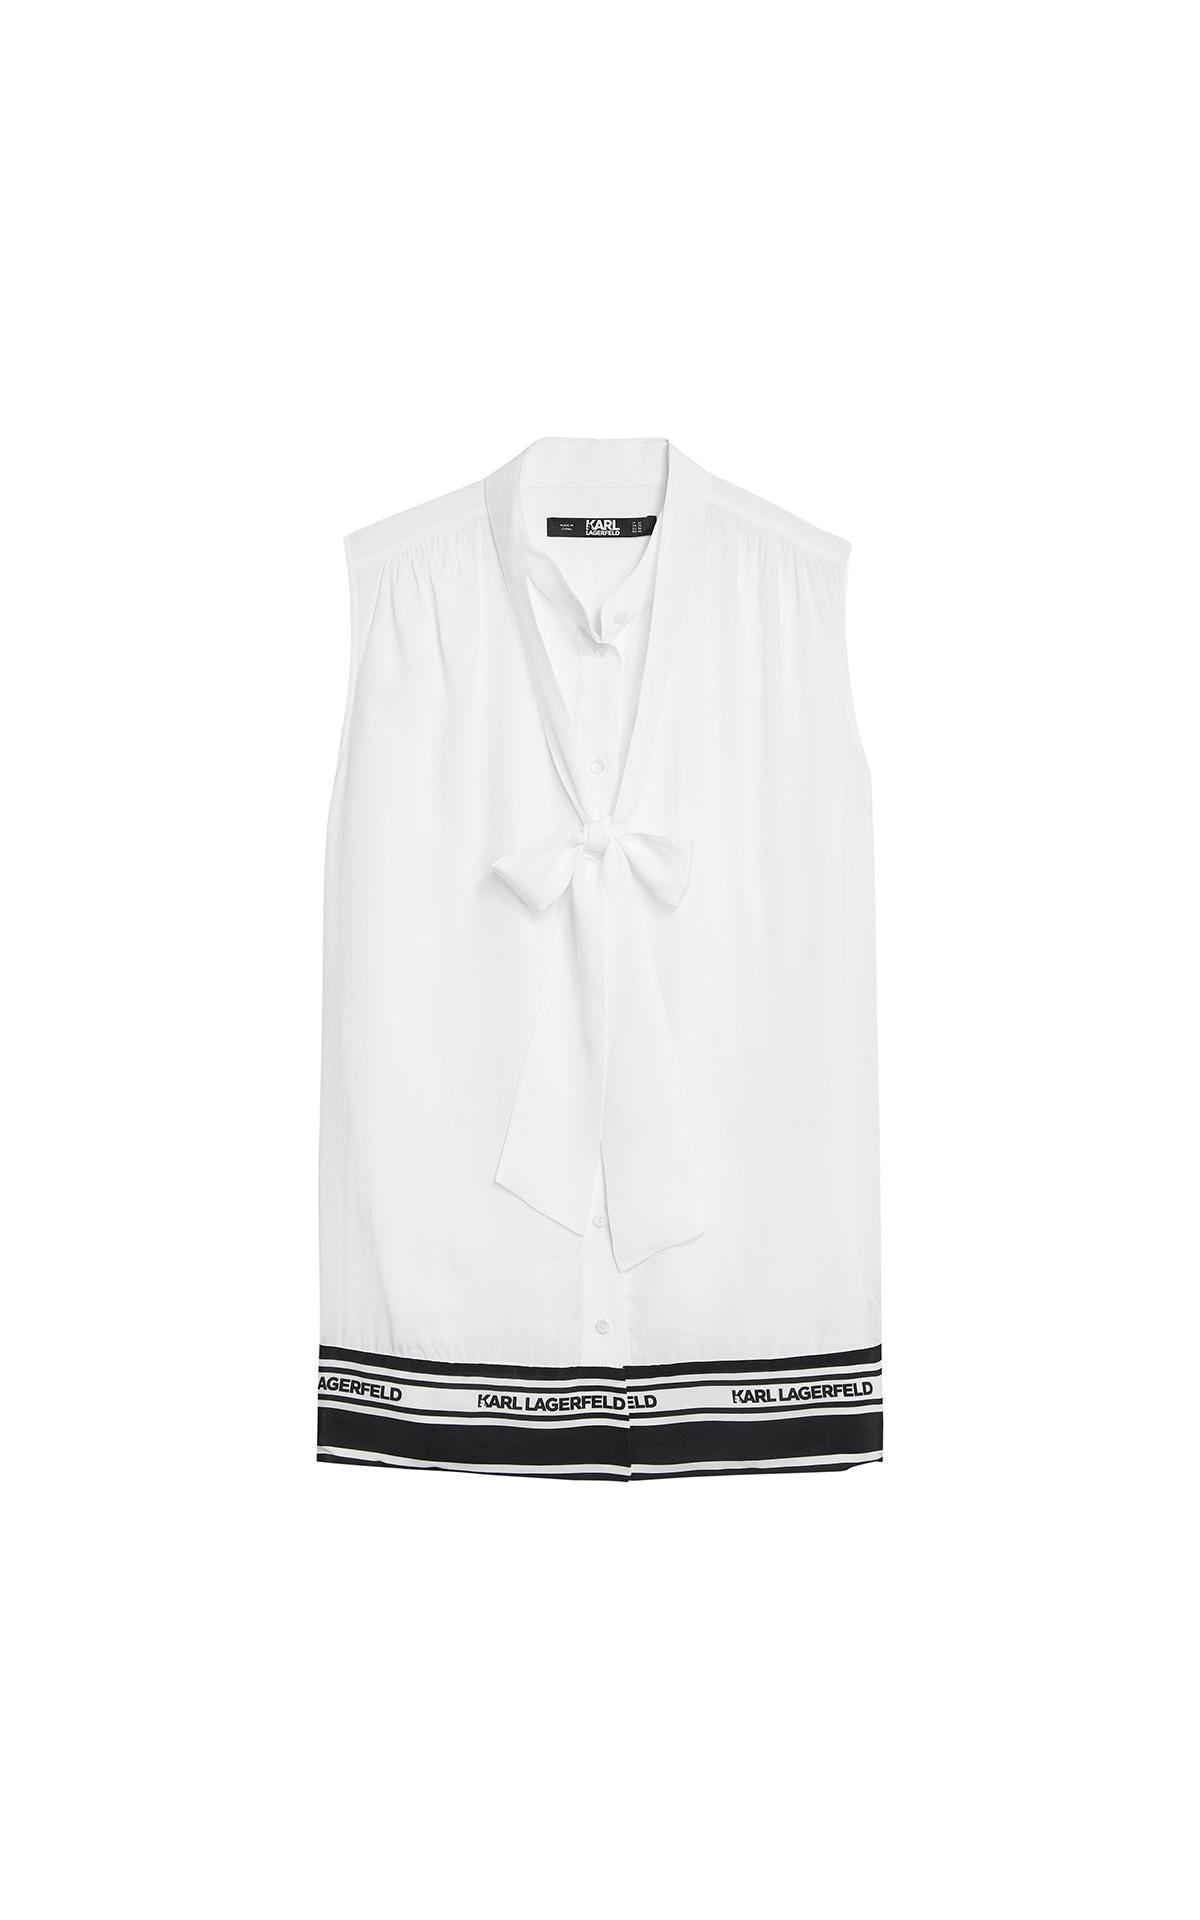 KARL LAGERFELD Karlifornia logo blouse in white at The BIcester Village Shopping Collection